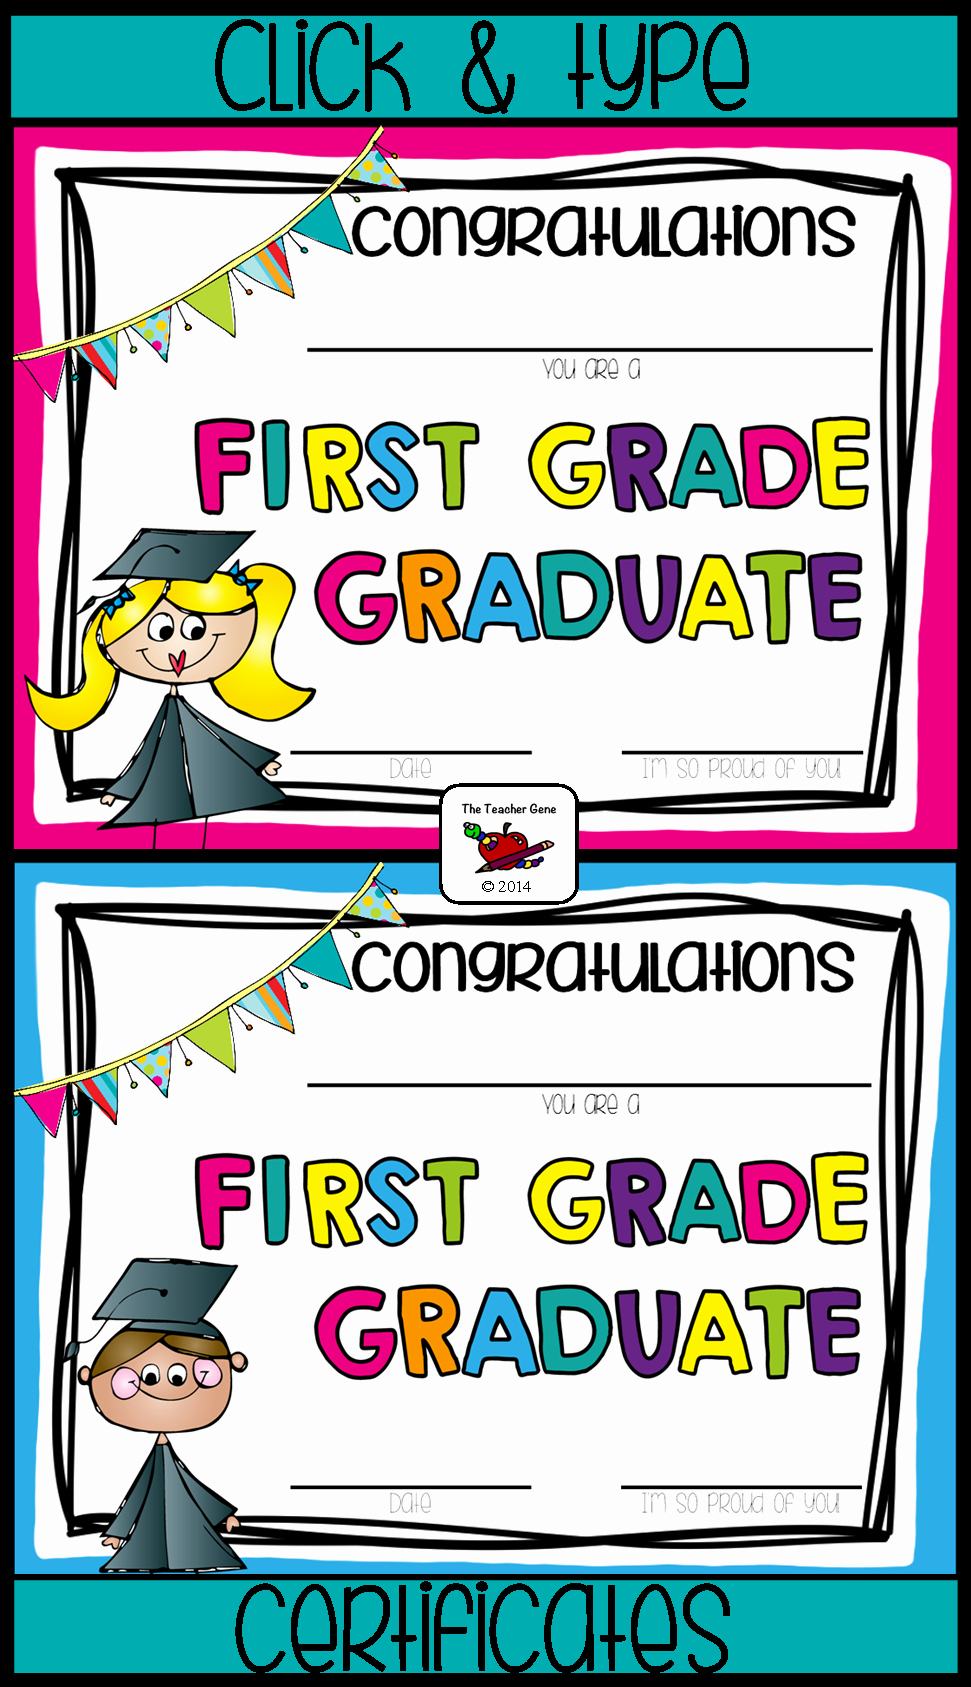 Preschool Certificates Of Completion Awesome First Grade Graduation Certificates & First Grade